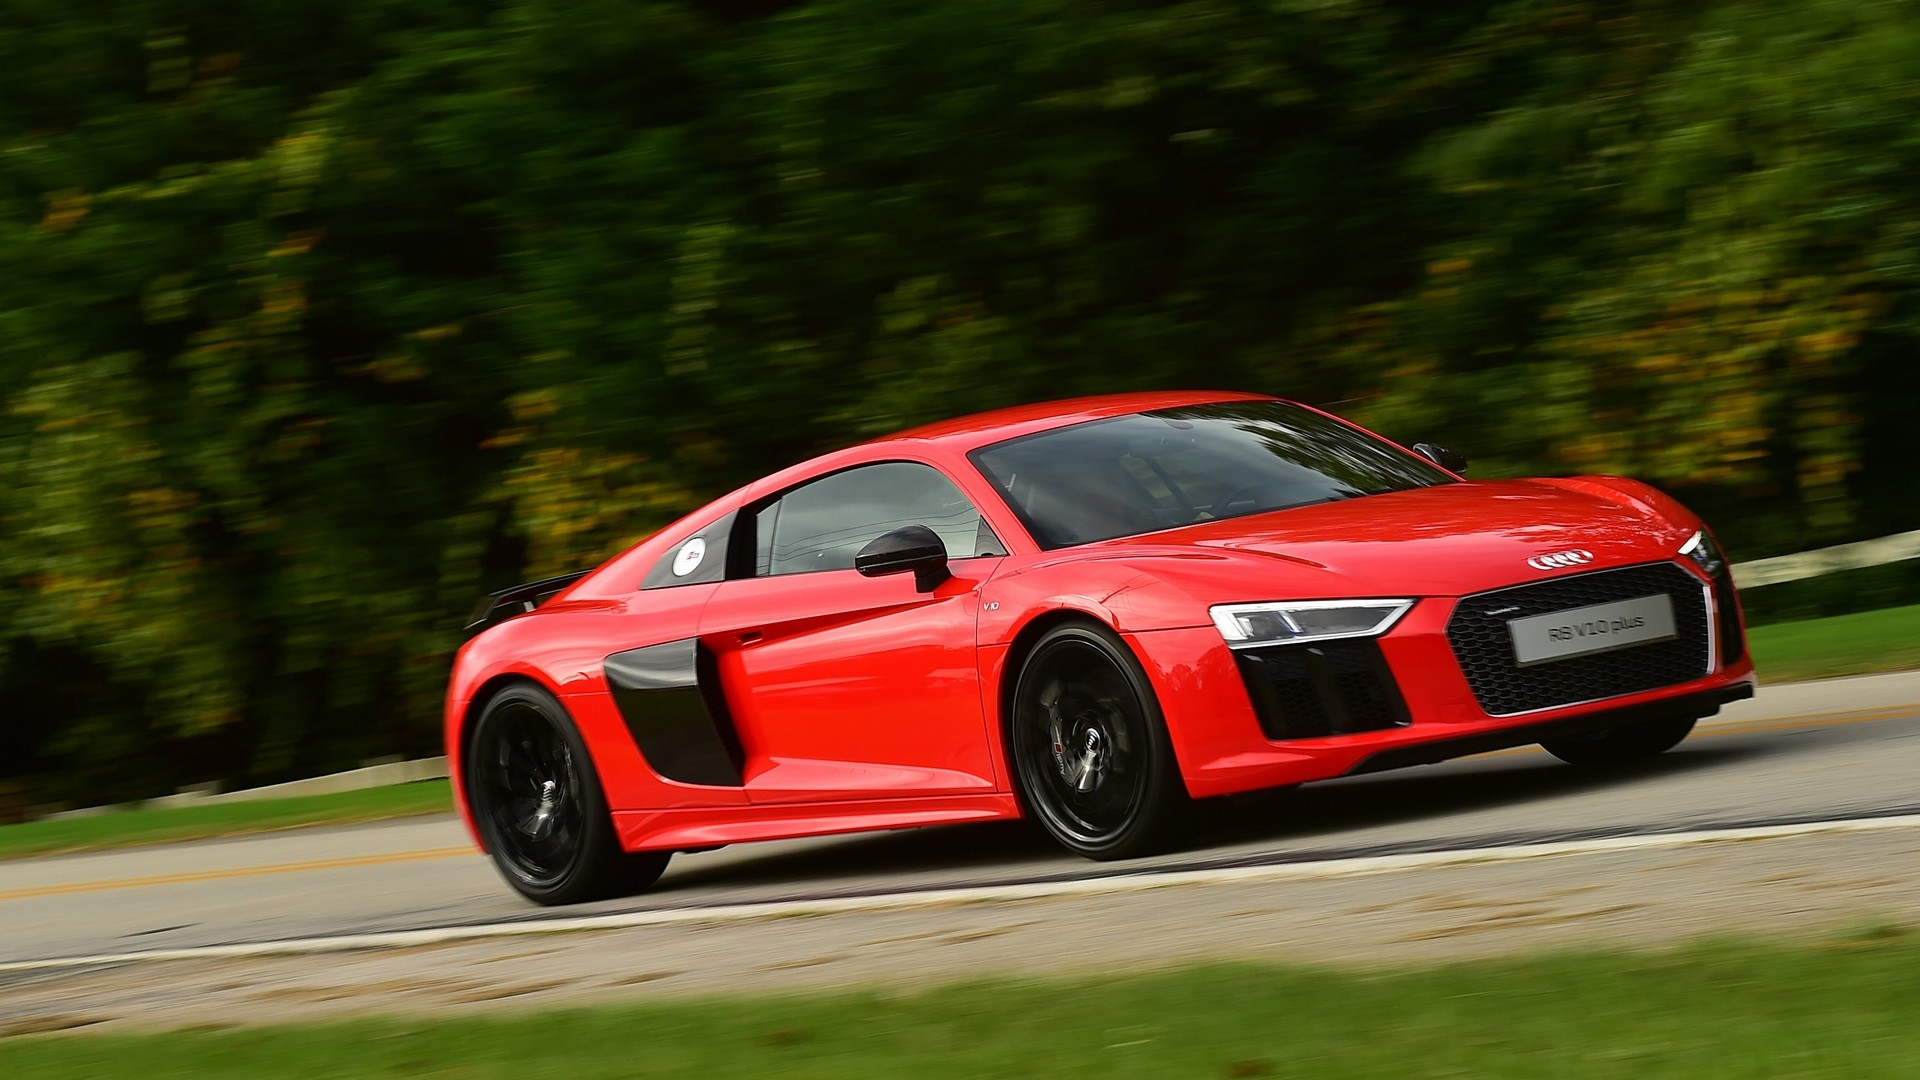 audi-r-sport-rain-race-Audi-Of-America-Announces-Pricing-For-The-All-New-R-The-wallpaper-wpc9002414